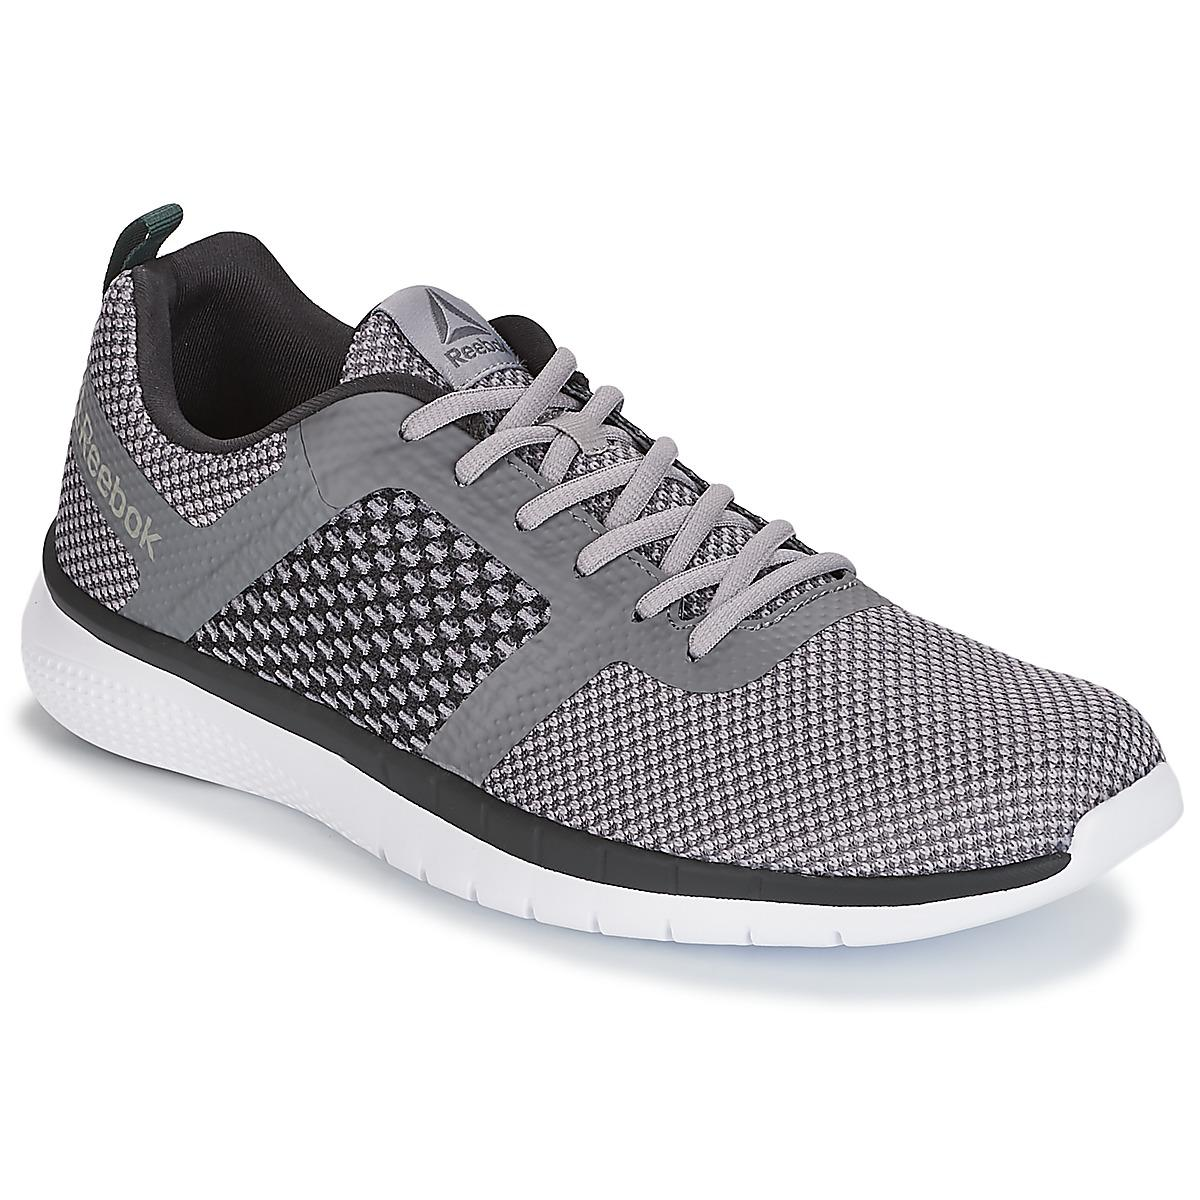 af3efdad8e959f Reebok Reebok Pt Prime Runner Fc Running Trainers in Gray for Men - Lyst